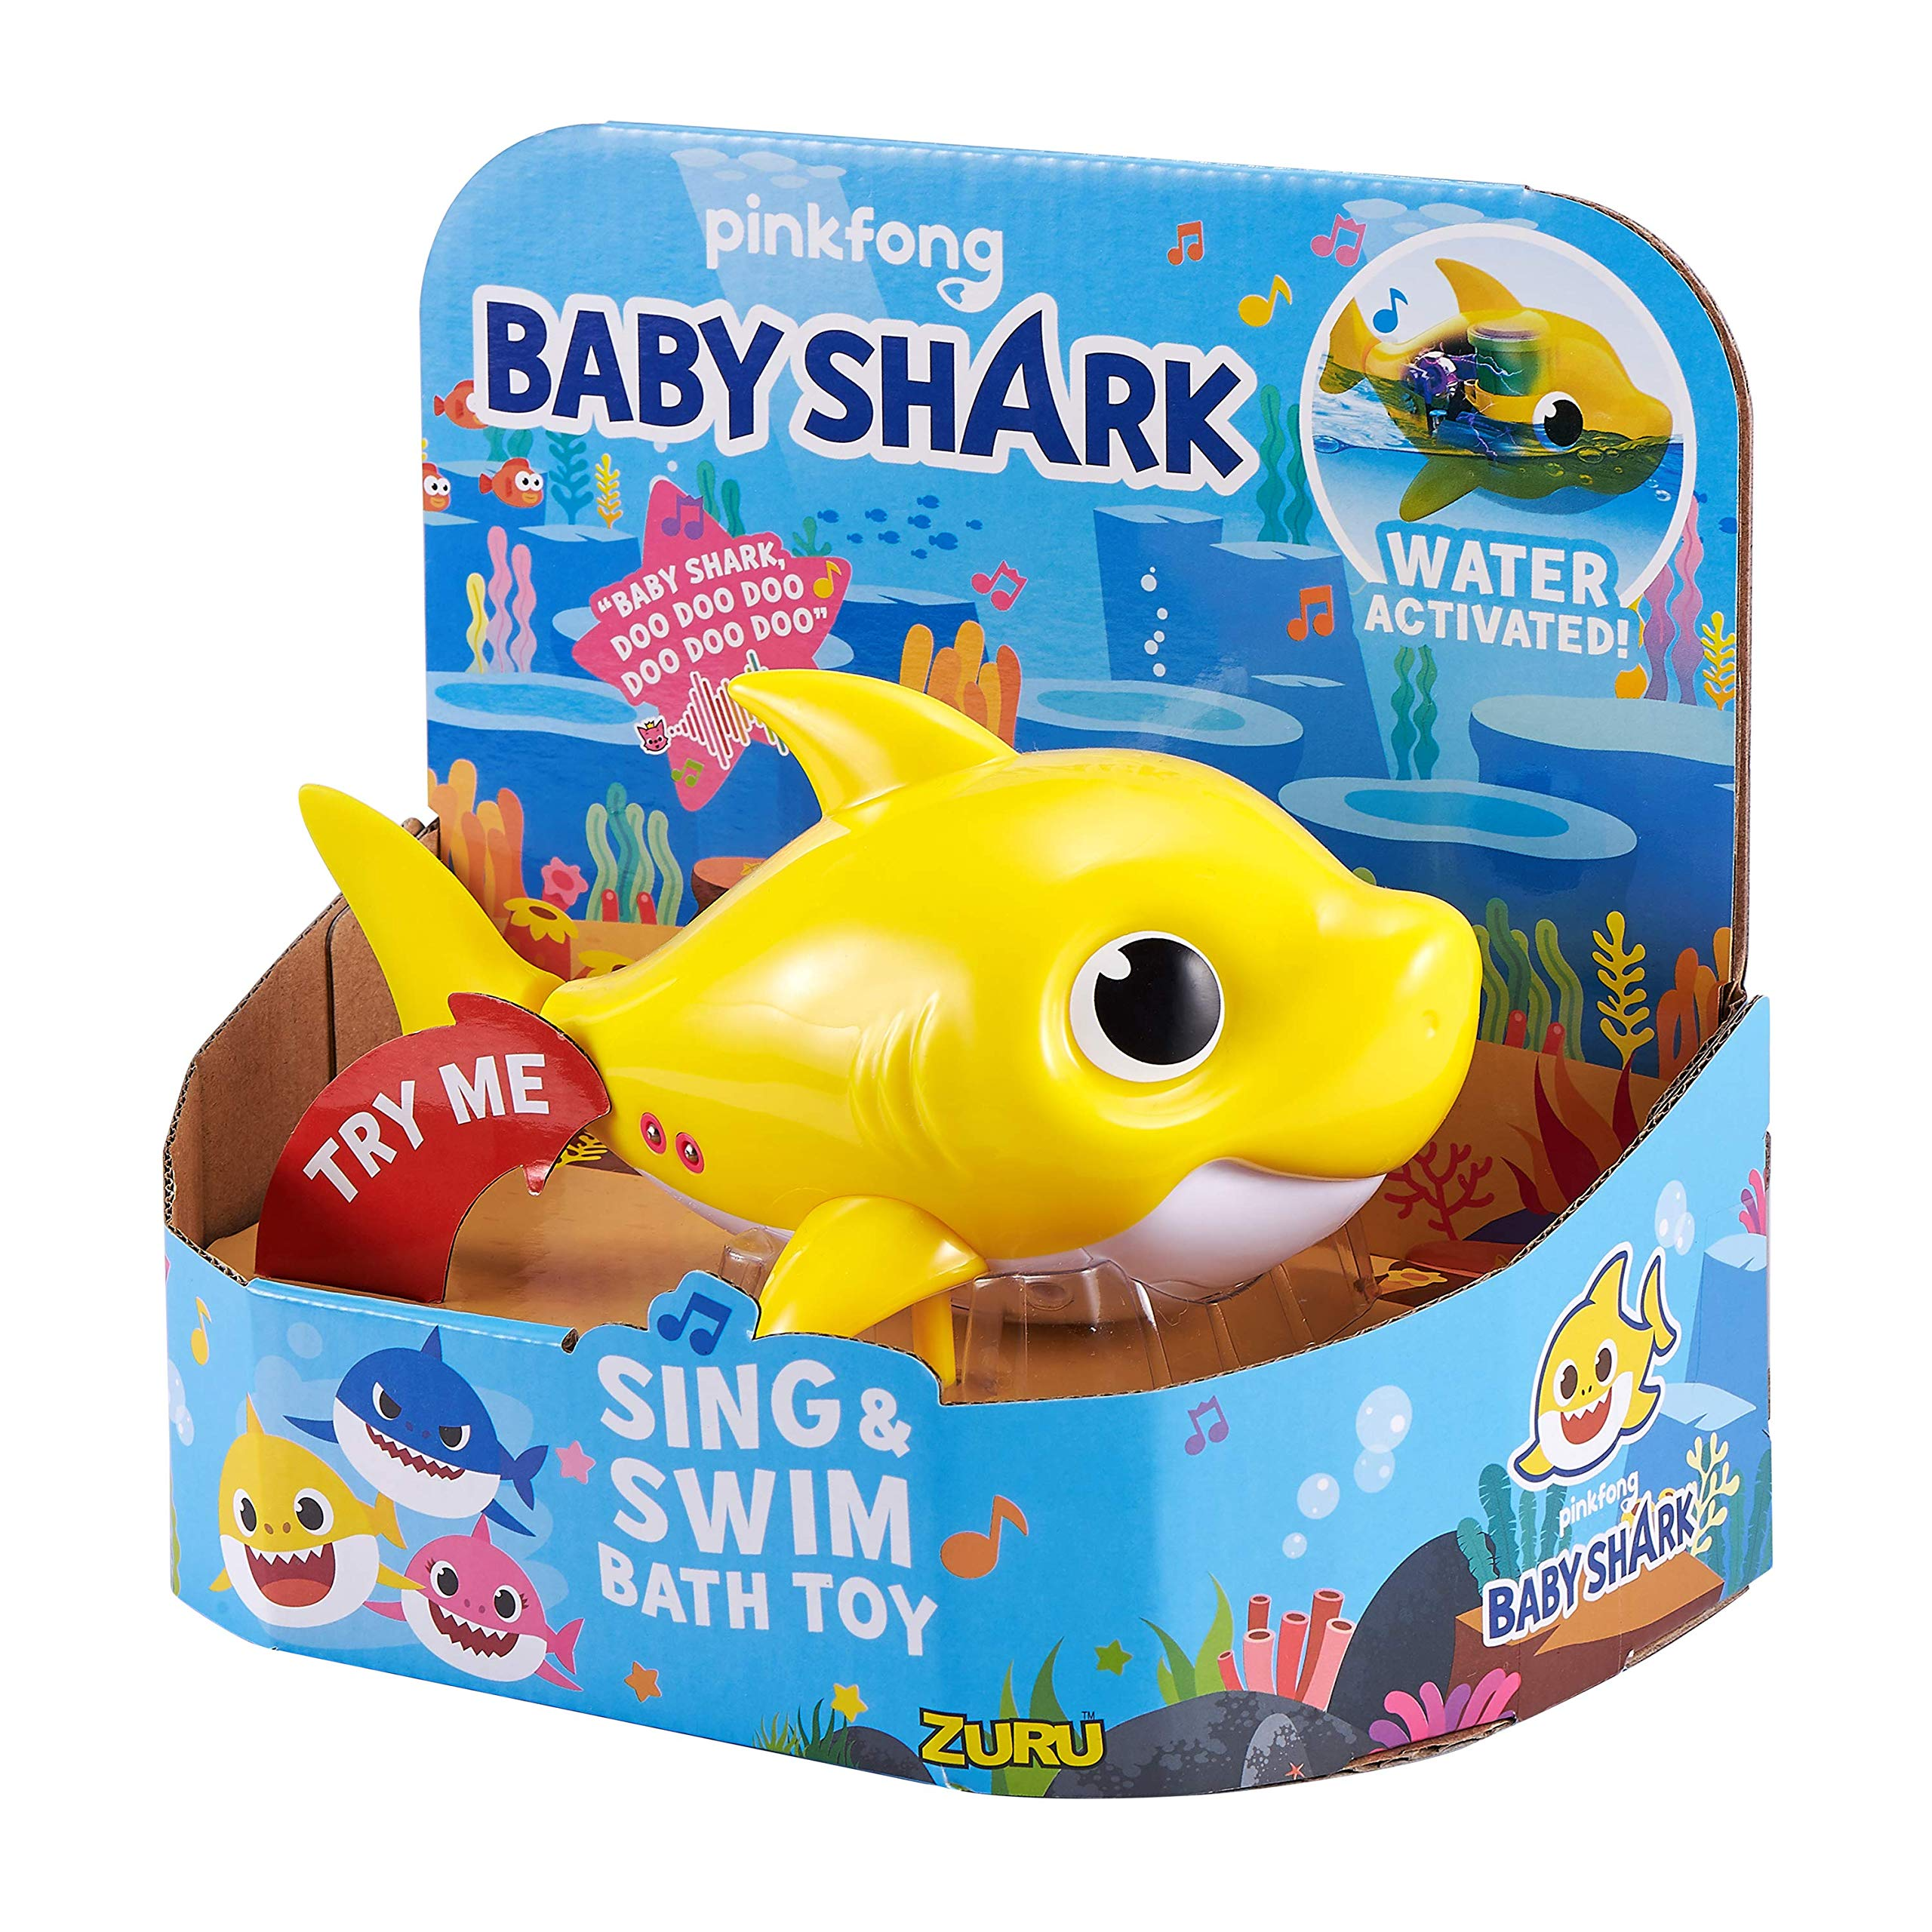 Robo Alive Junior Baby Shark Battery-Powered Sing and Swim Bath Toy by ZURU - Baby Shark (Yellow) by Robo Alive Junior (Image #2)